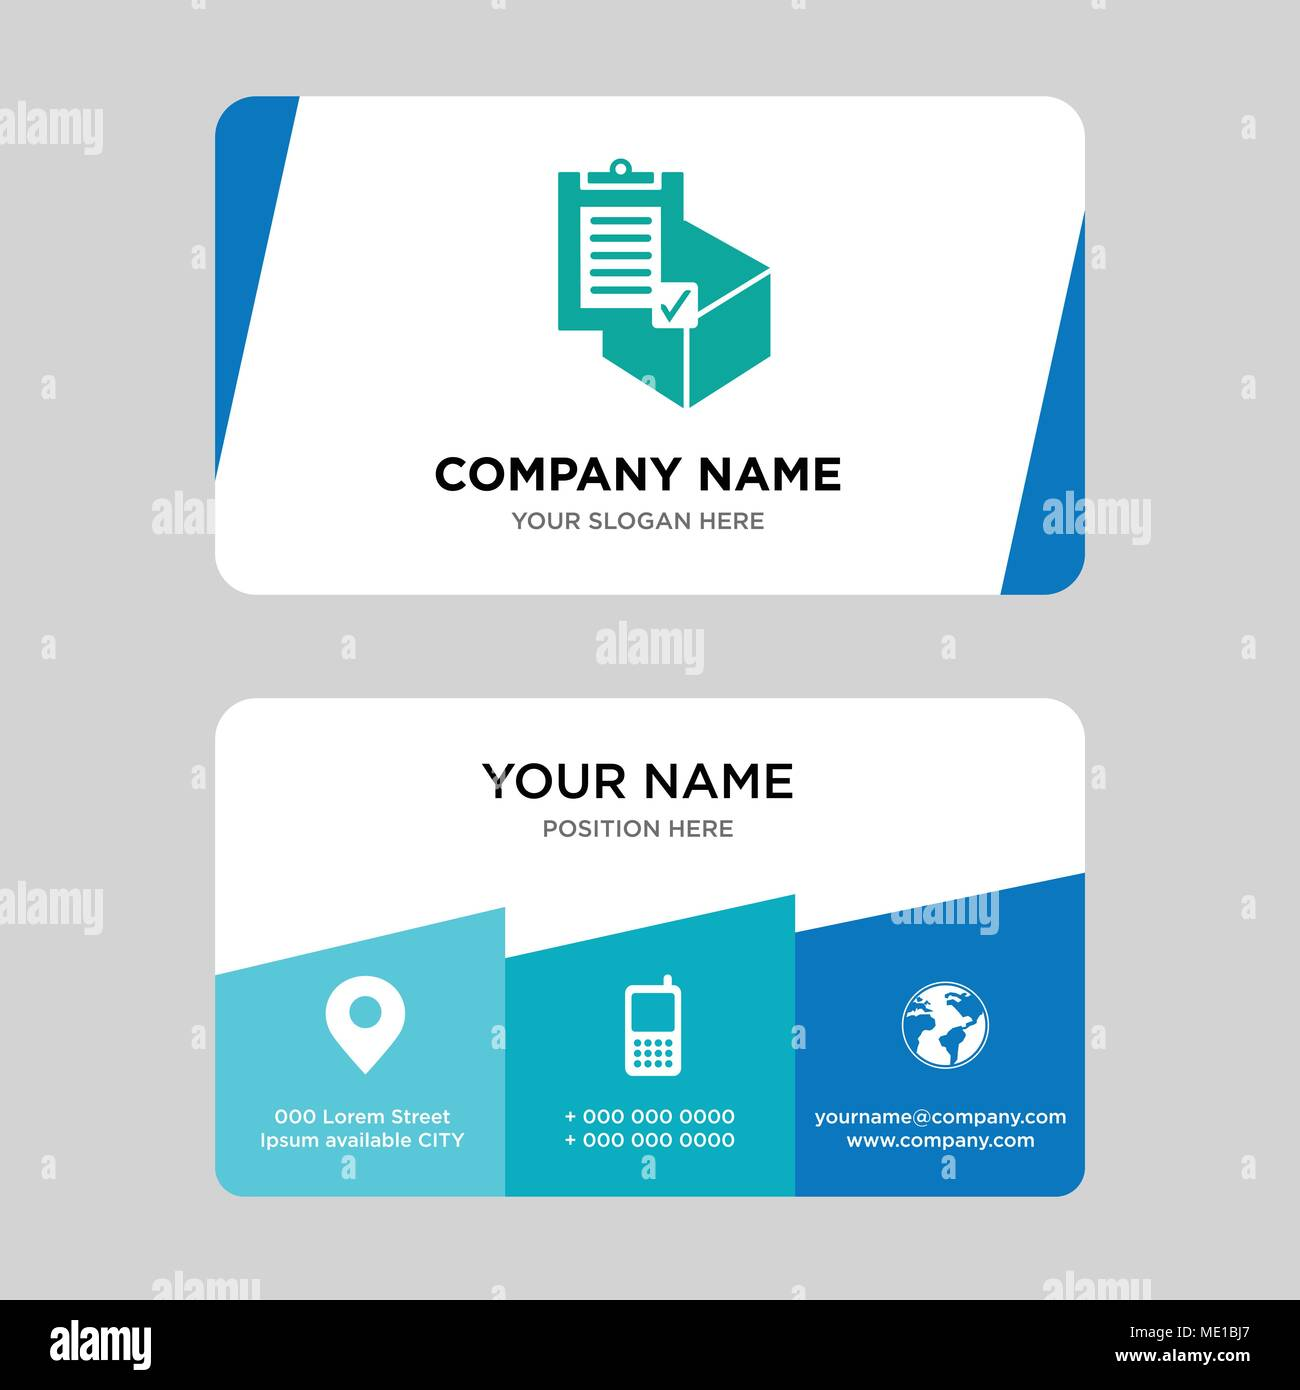 Commercial delivery business card design template, Visiting for your company, Modern Creative and Clean identity Card Vector Illustration Stock Vector